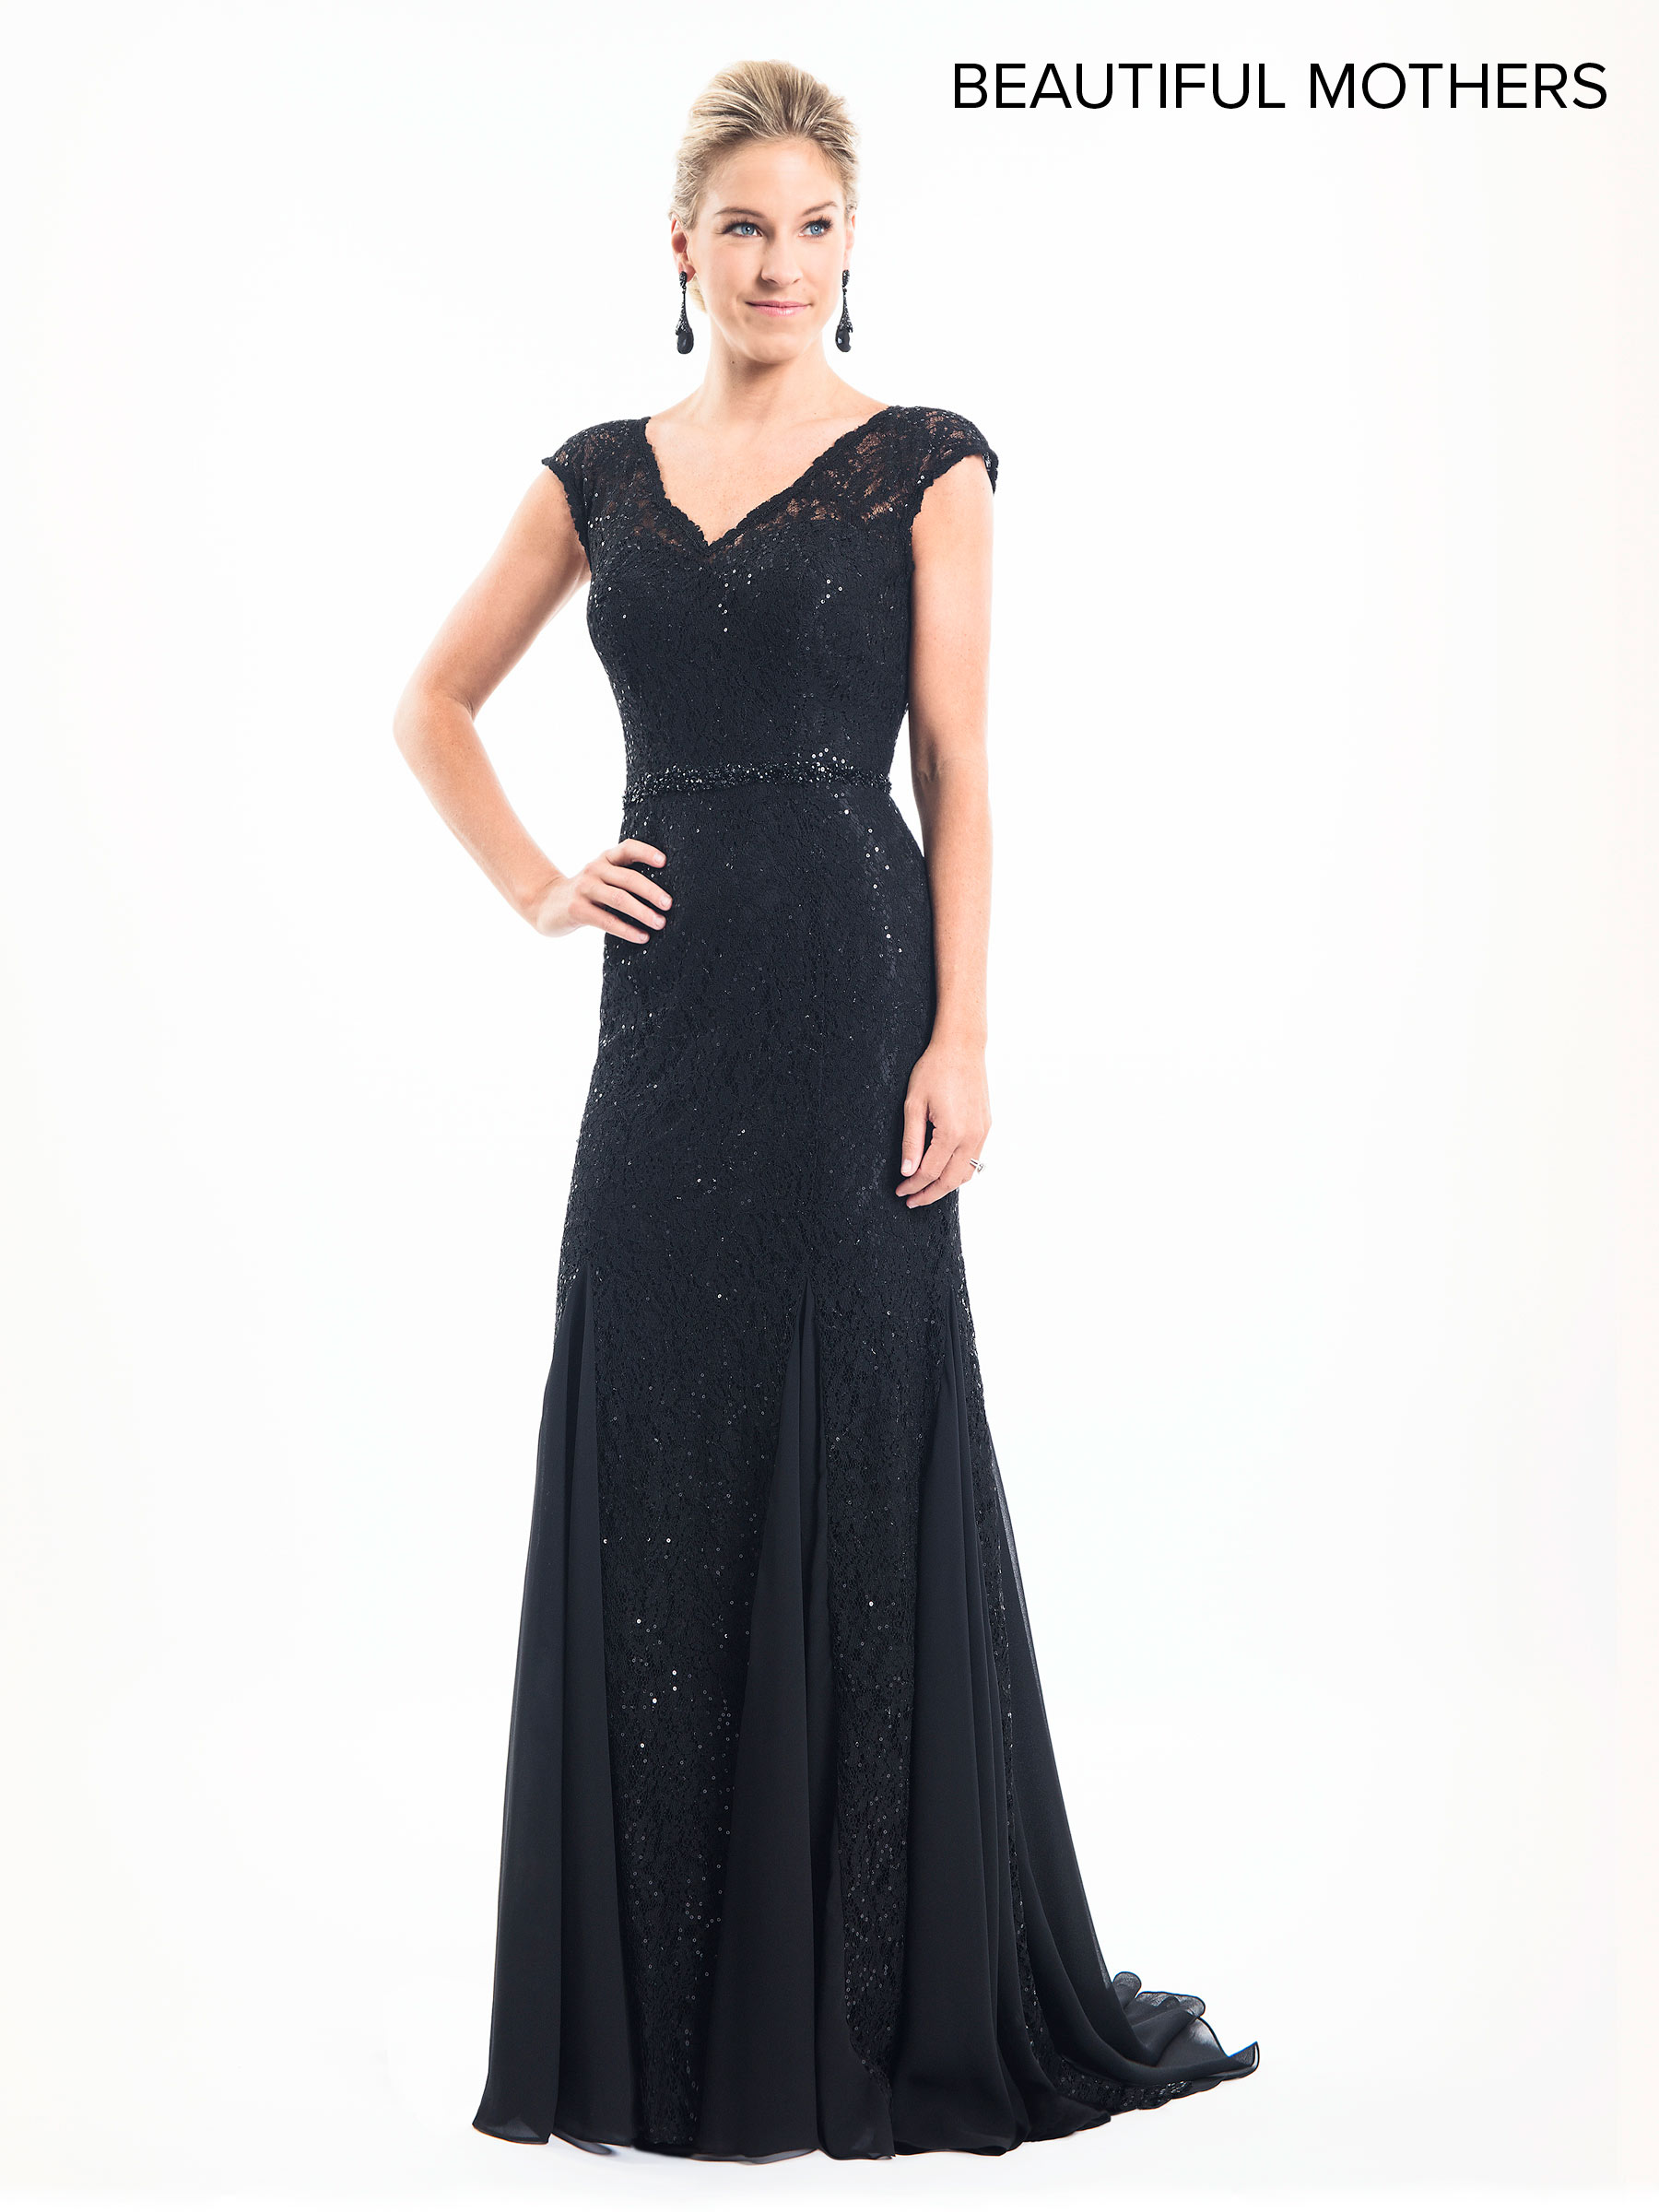 Mother Of The Bride Dresses | Beautiful Mothers | Style - MB8010